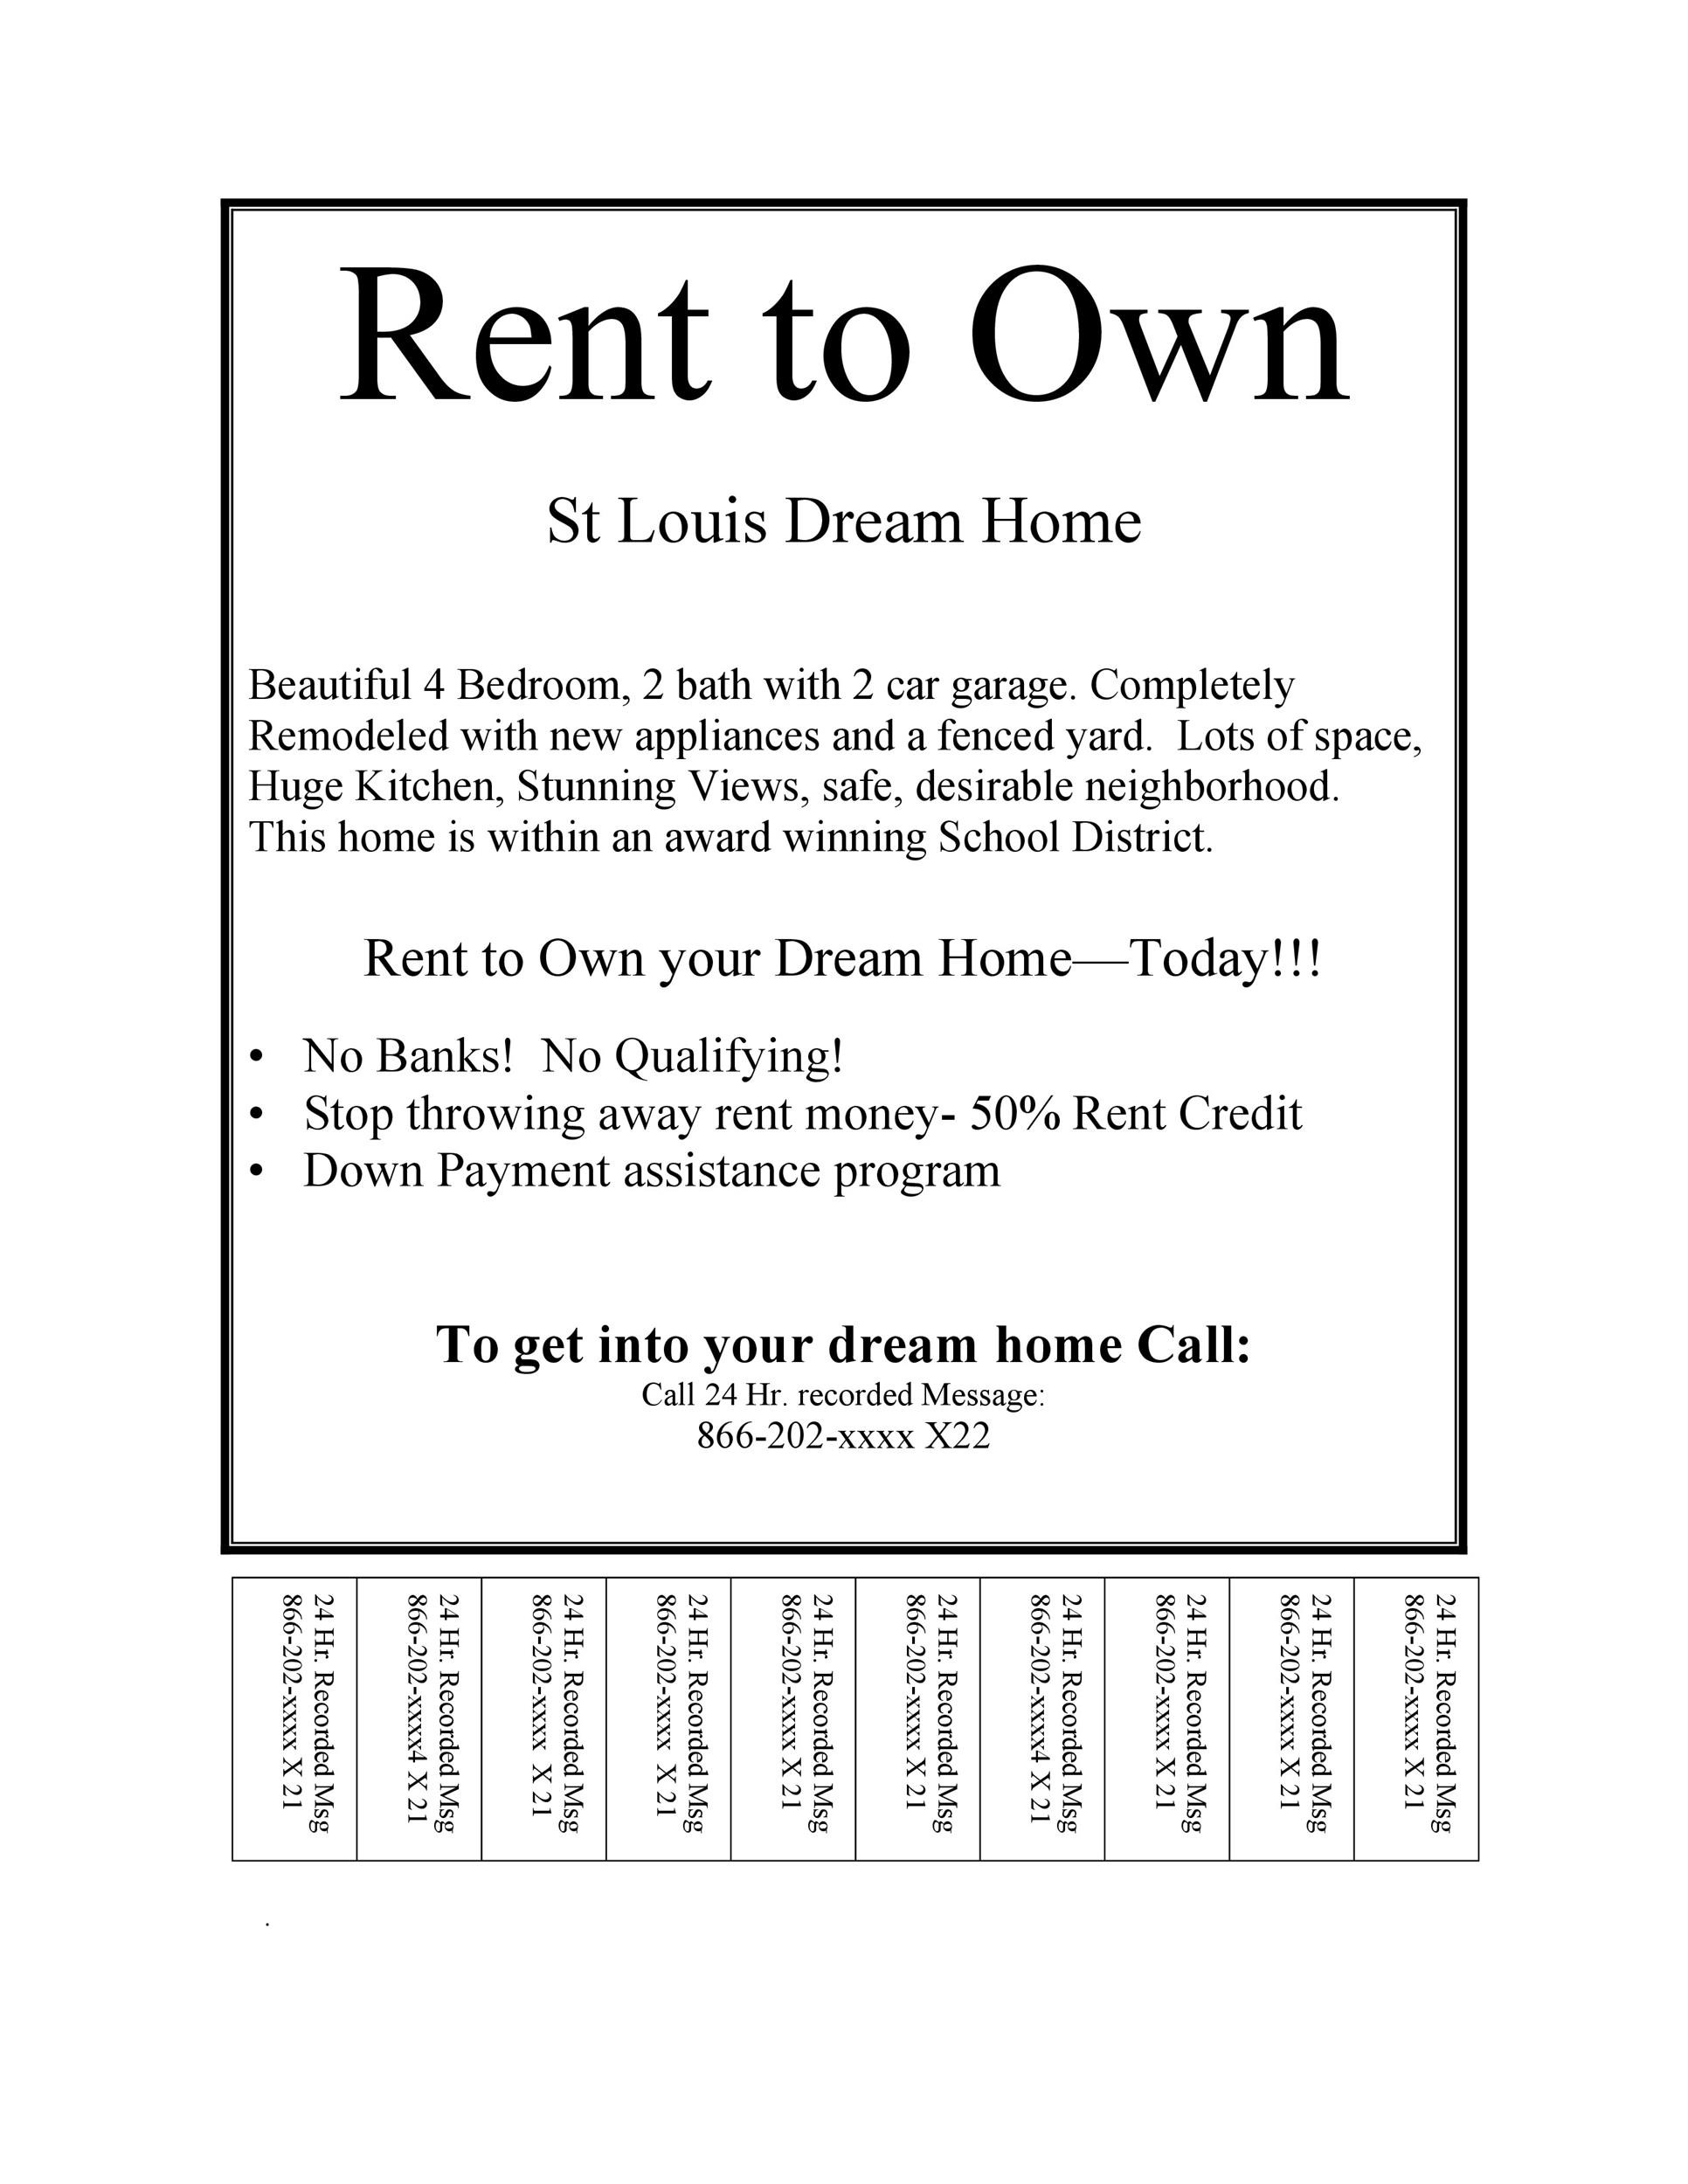 Free tear off flyer 27